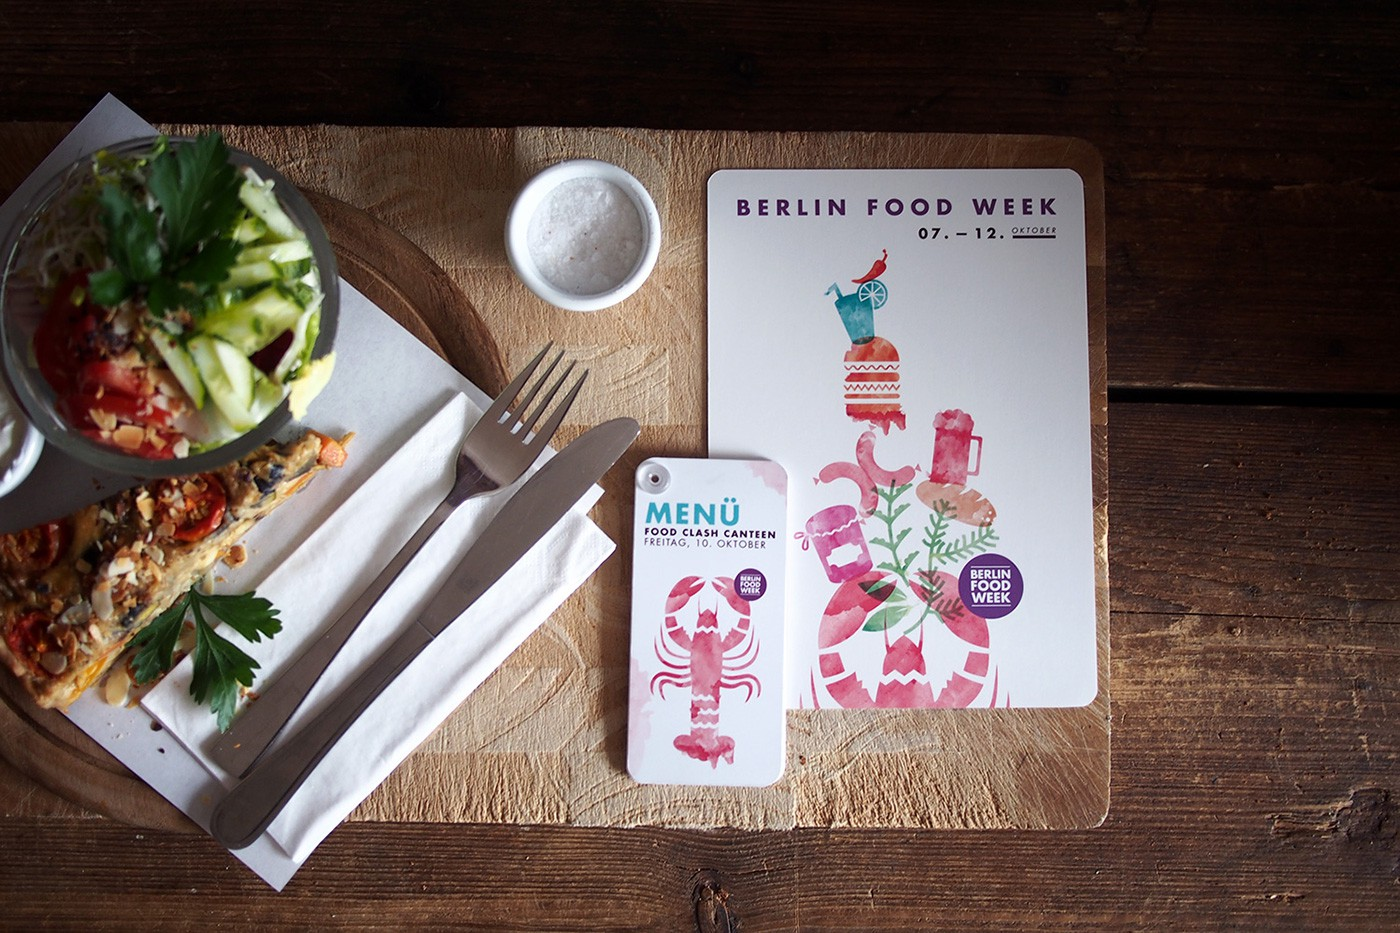 Berlin Food Week 2014 design by upstruct